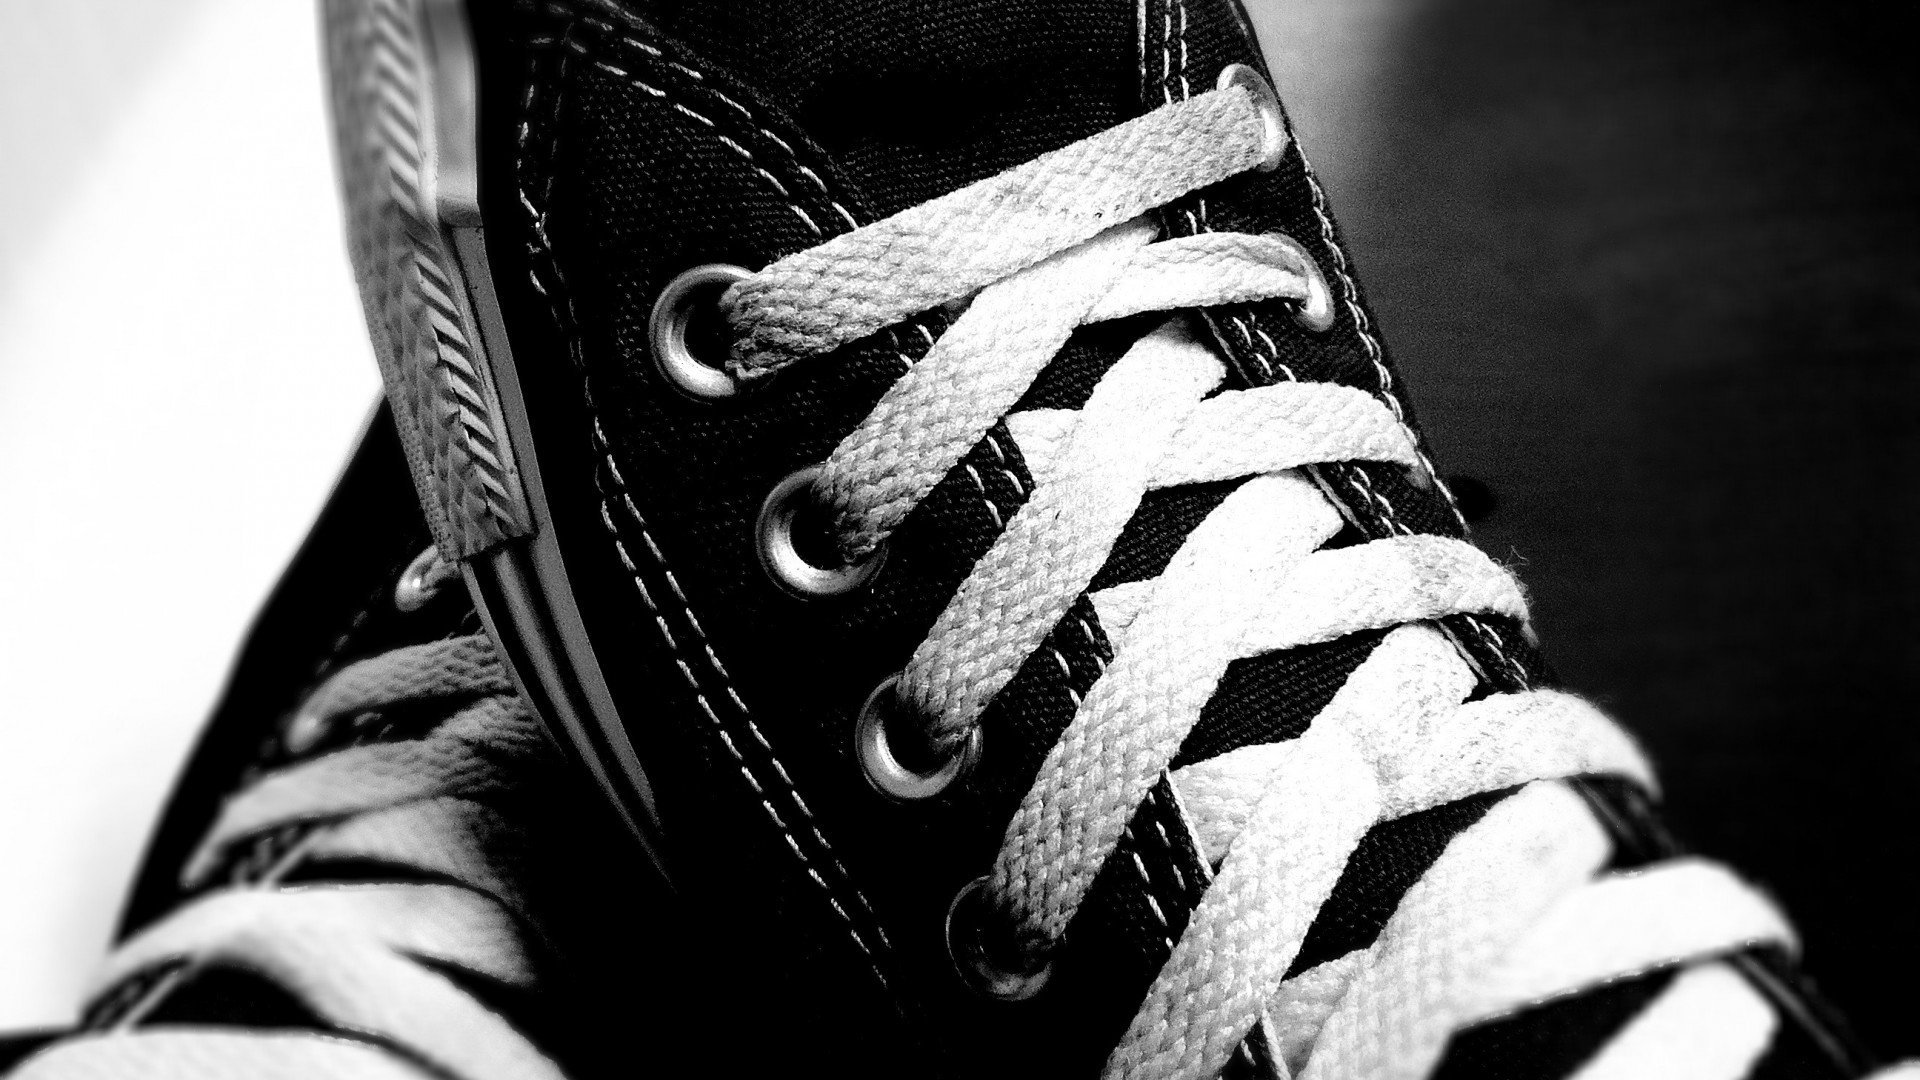 converse abstracts wallpapers myspace - photo #9